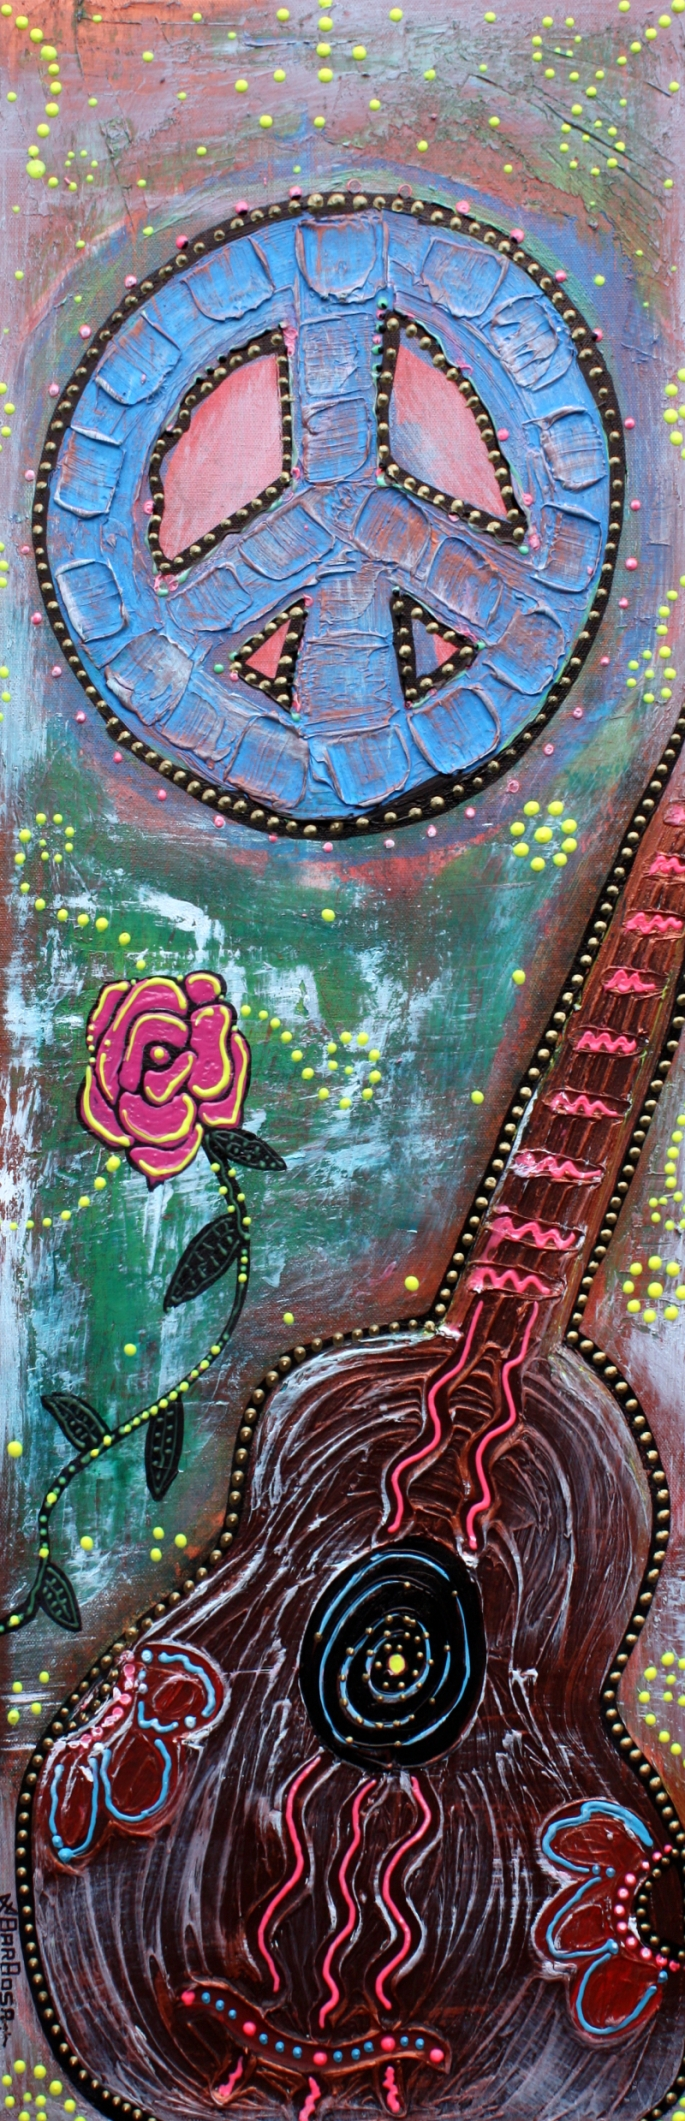 Bohemian Peace 1 by Laura Barbosa - Mixed Media ART - Canvas Guitar